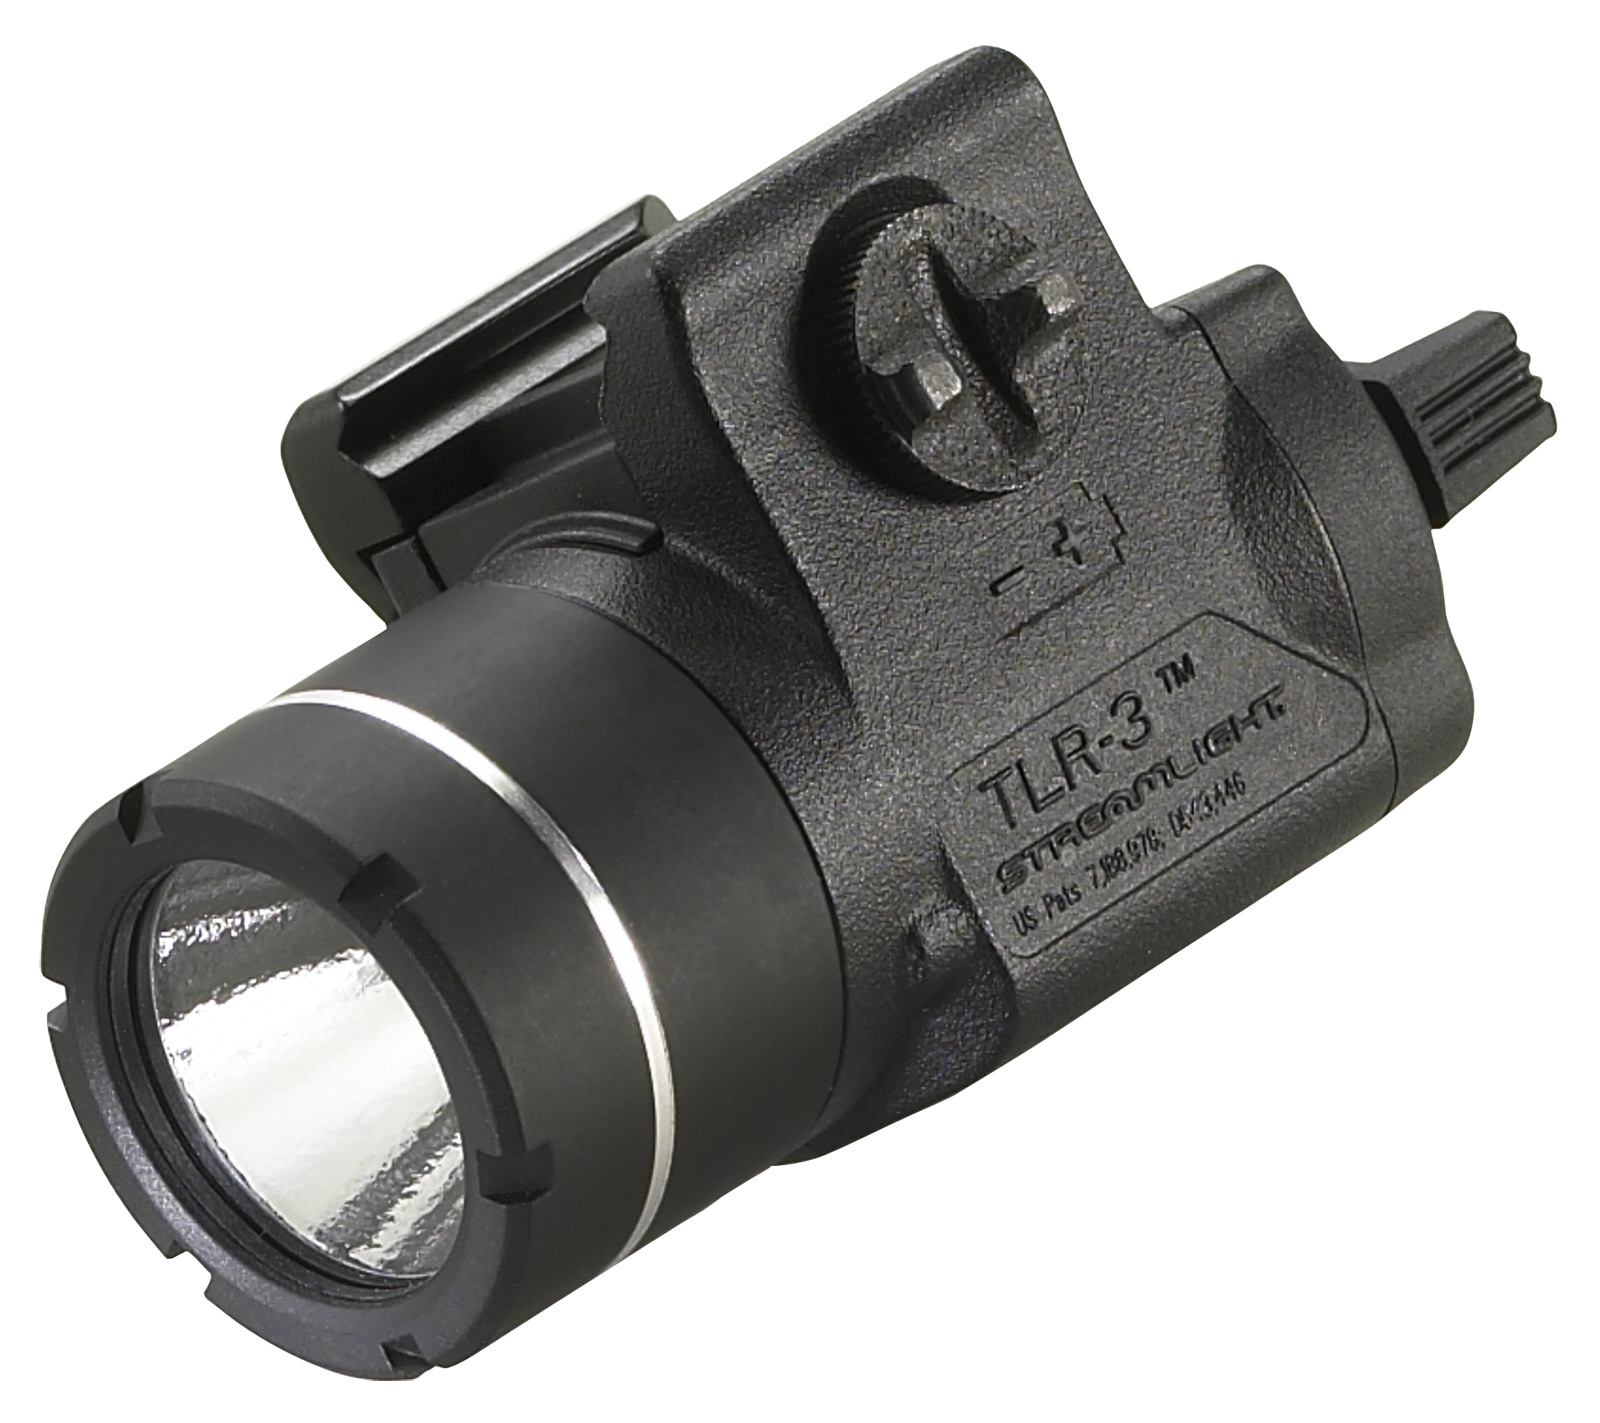 Streamlight TLR-3 Compact Rail Mounted 69220 Tactical Light C4 LED 125 Lumens by Streamlight